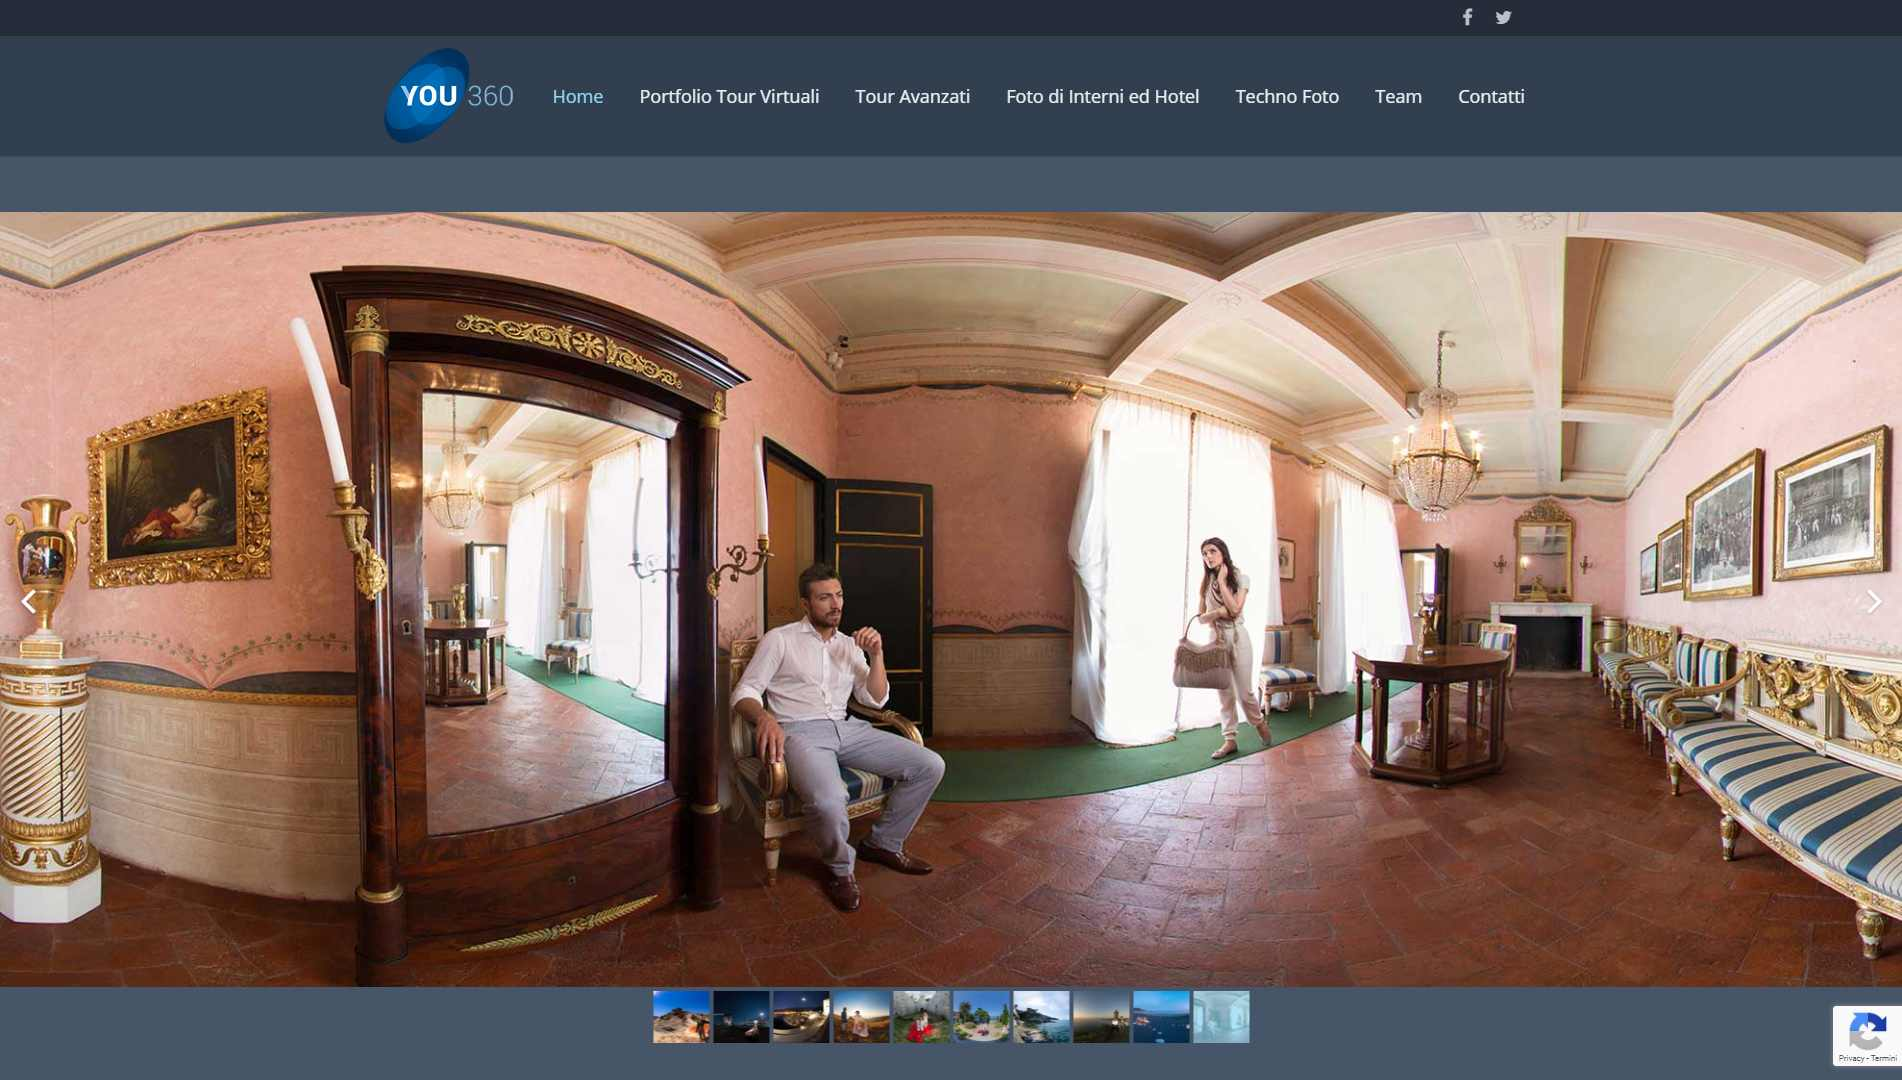 Sito Web you360.it Fotografi Certificati Google e tour virtuali